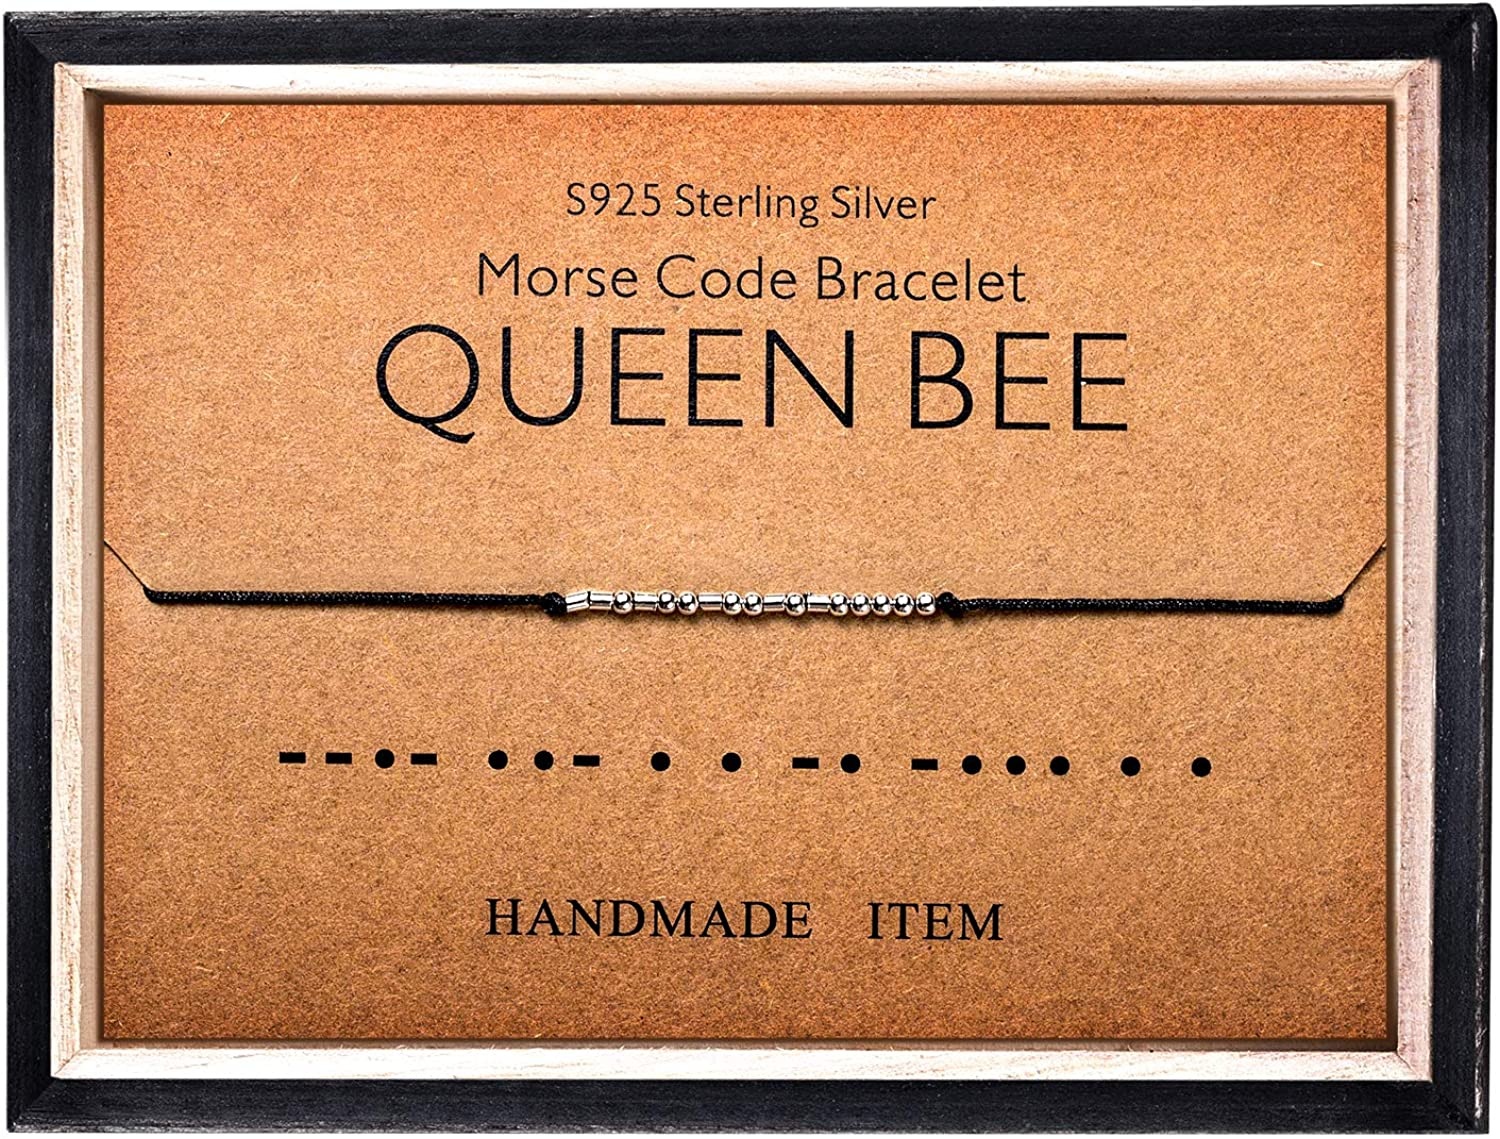 Morse Code Bracelet 925 Sterling Silver Beads on Silk Cord Secret Message QUEEN BEE bracelet Gift Jewelry for her